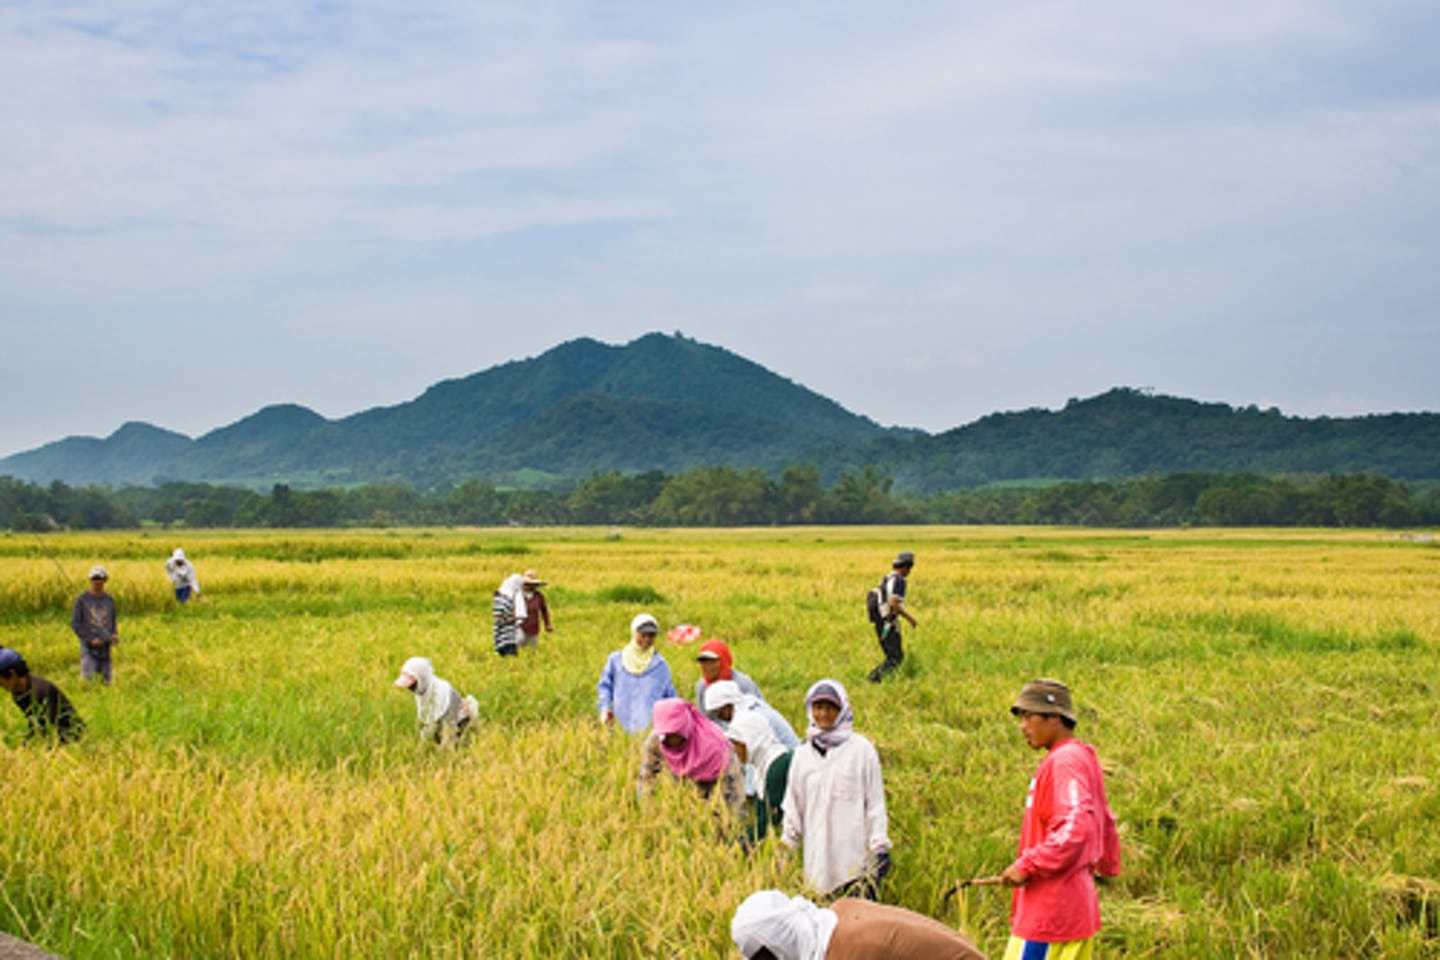 Farming community in the Philippines